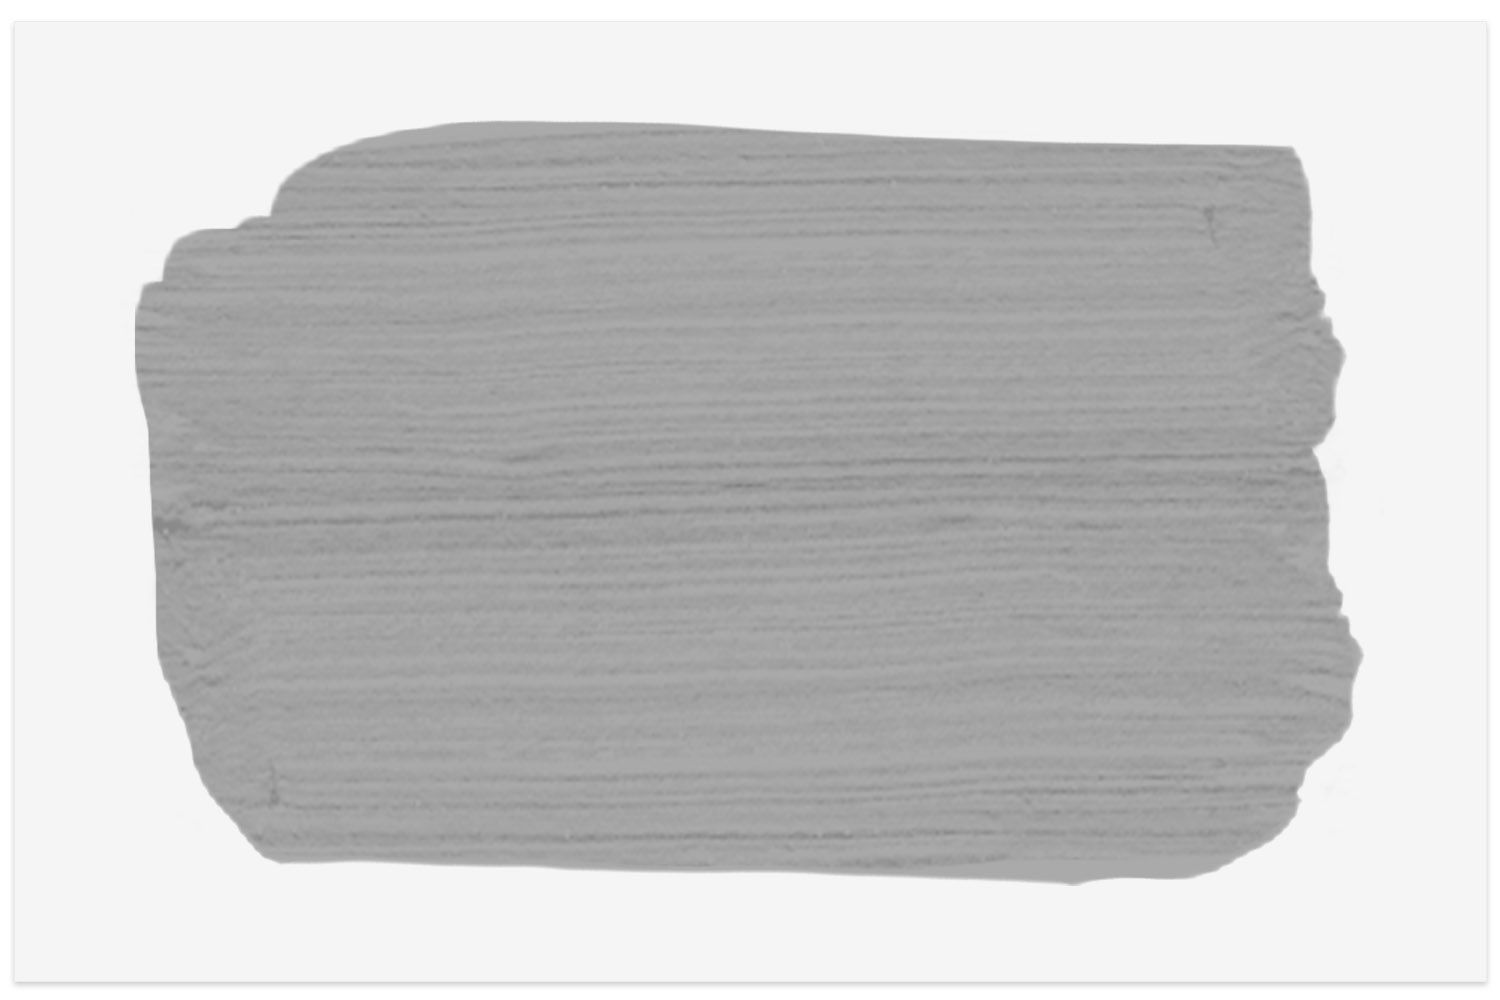 Cathedral Gray paint swatch from Behr